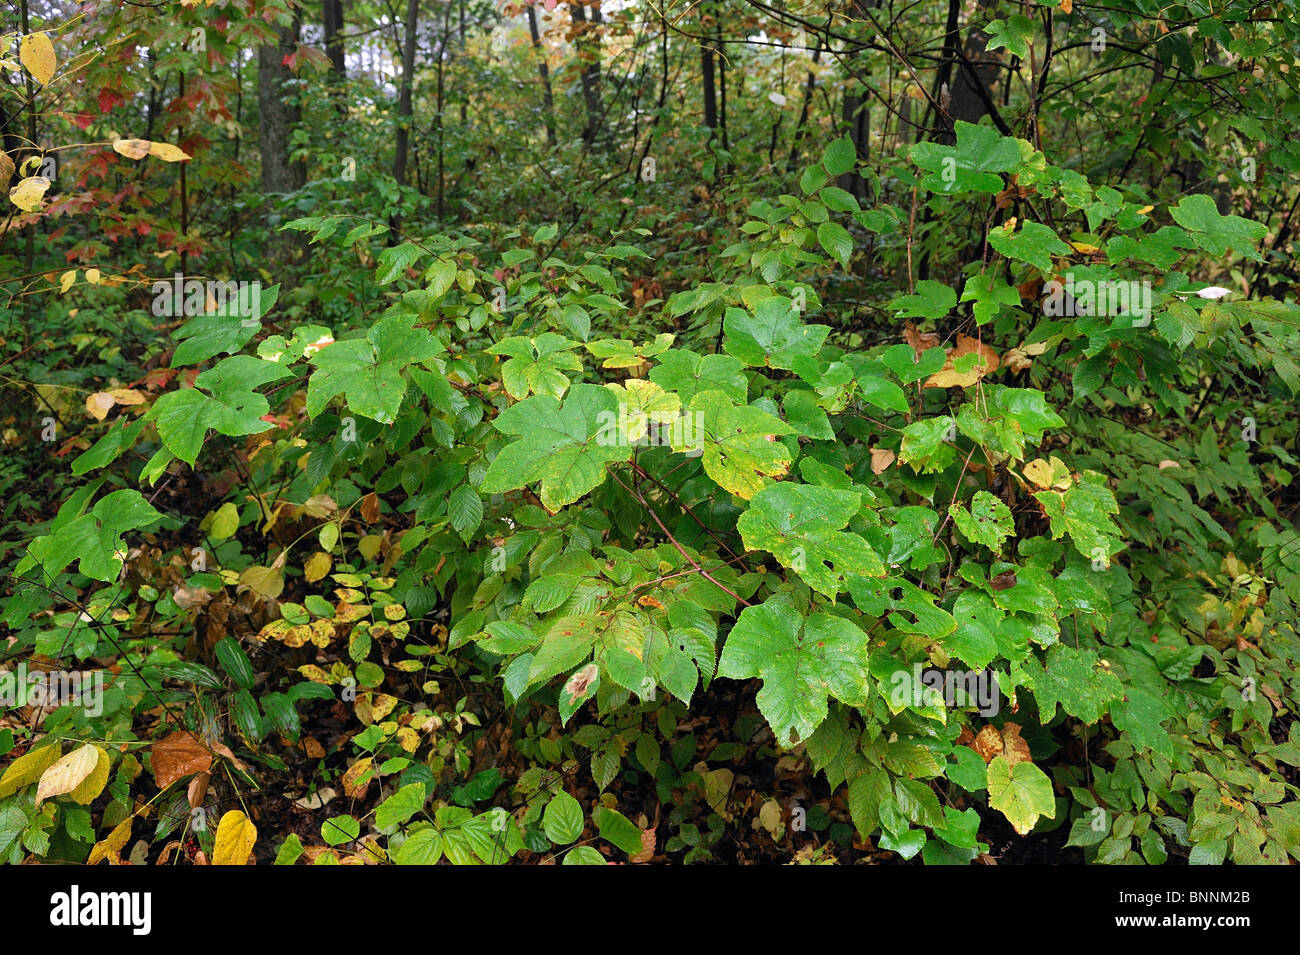 Fall colours colors Forest Governor Dodge State Park Wisconsin USA America United States of America leaves - Stock Image